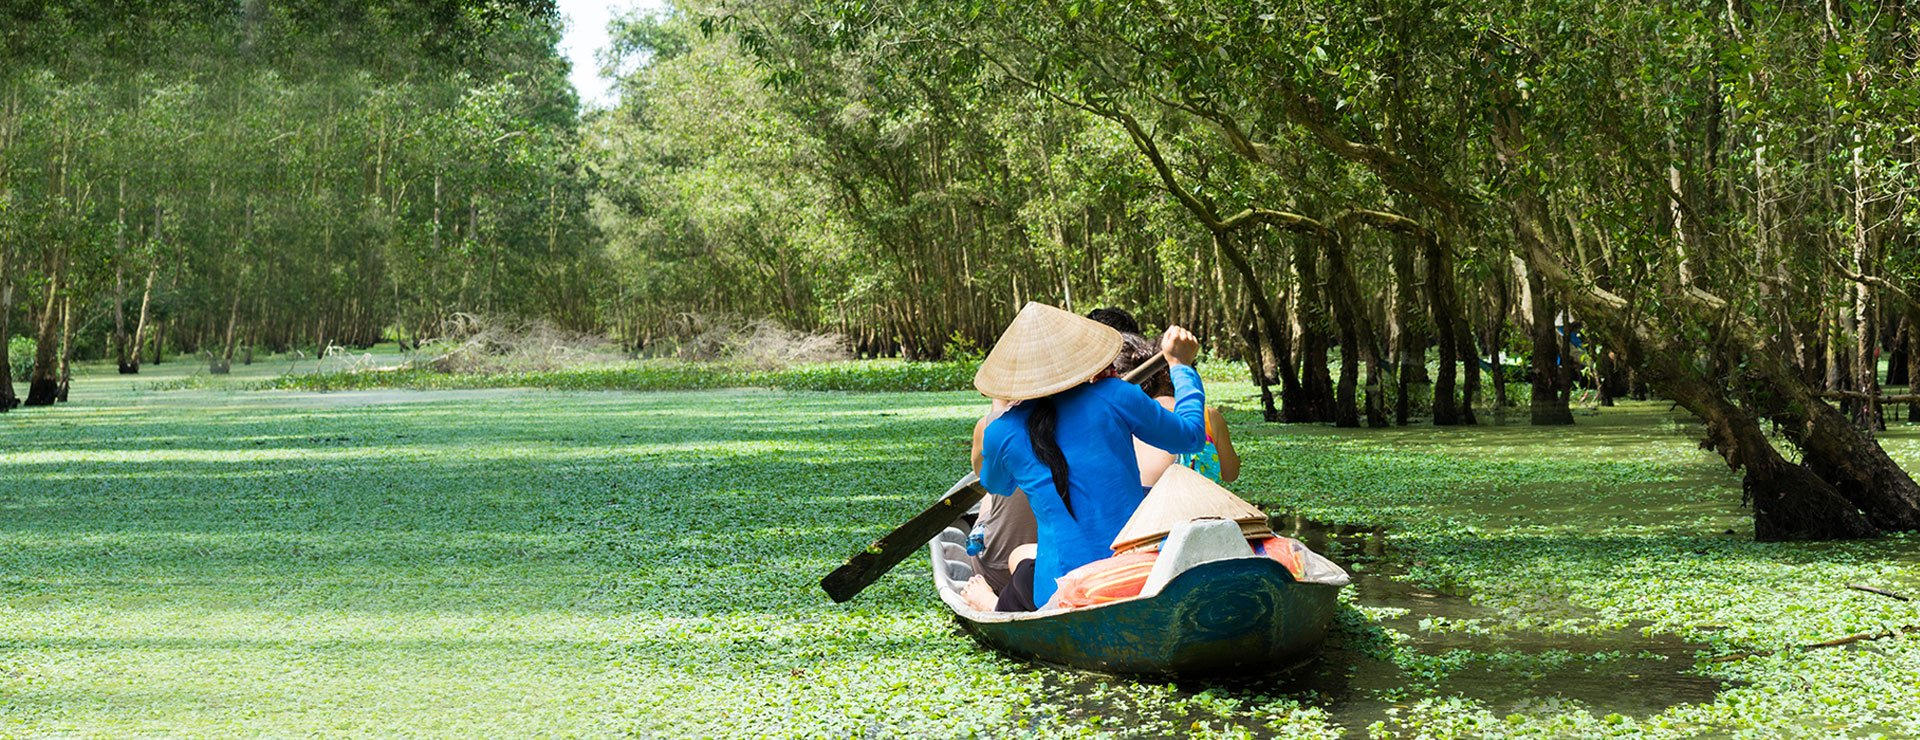 How does Vietnam become one of the best choices for holiday makers